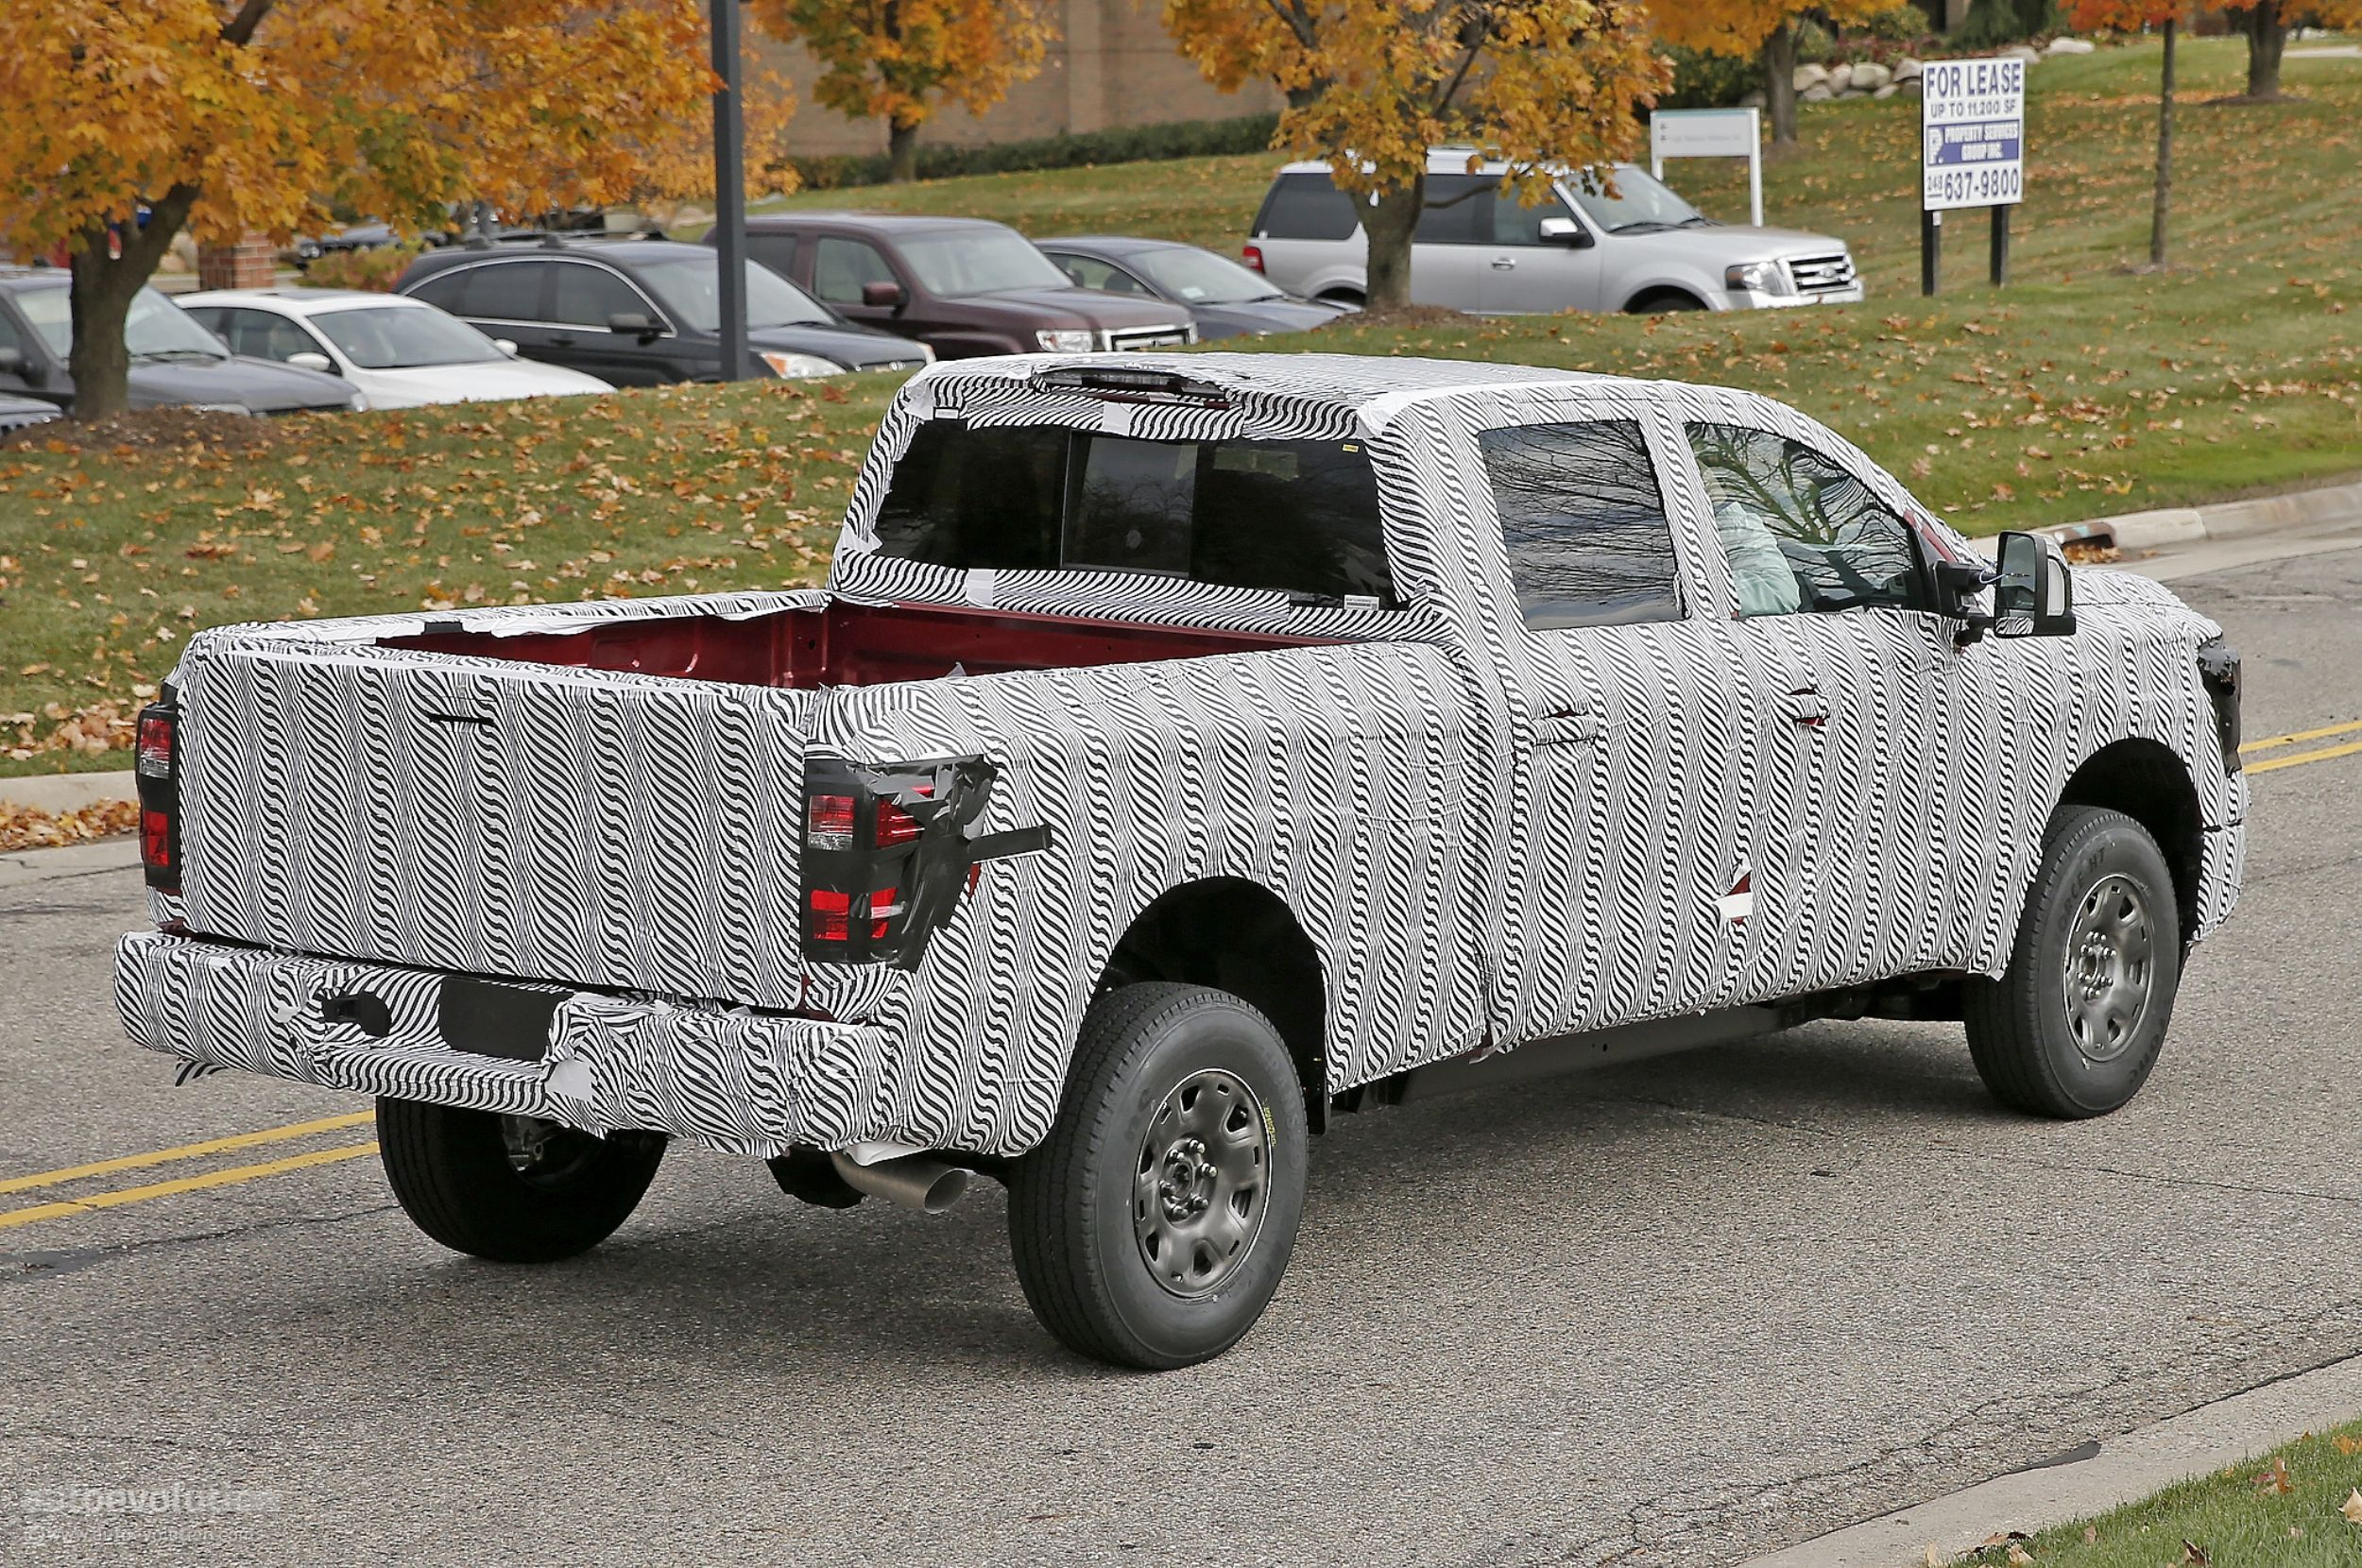 2016 nissan titan spied testing isv cummins turbo diesel autoevolution. Black Bedroom Furniture Sets. Home Design Ideas